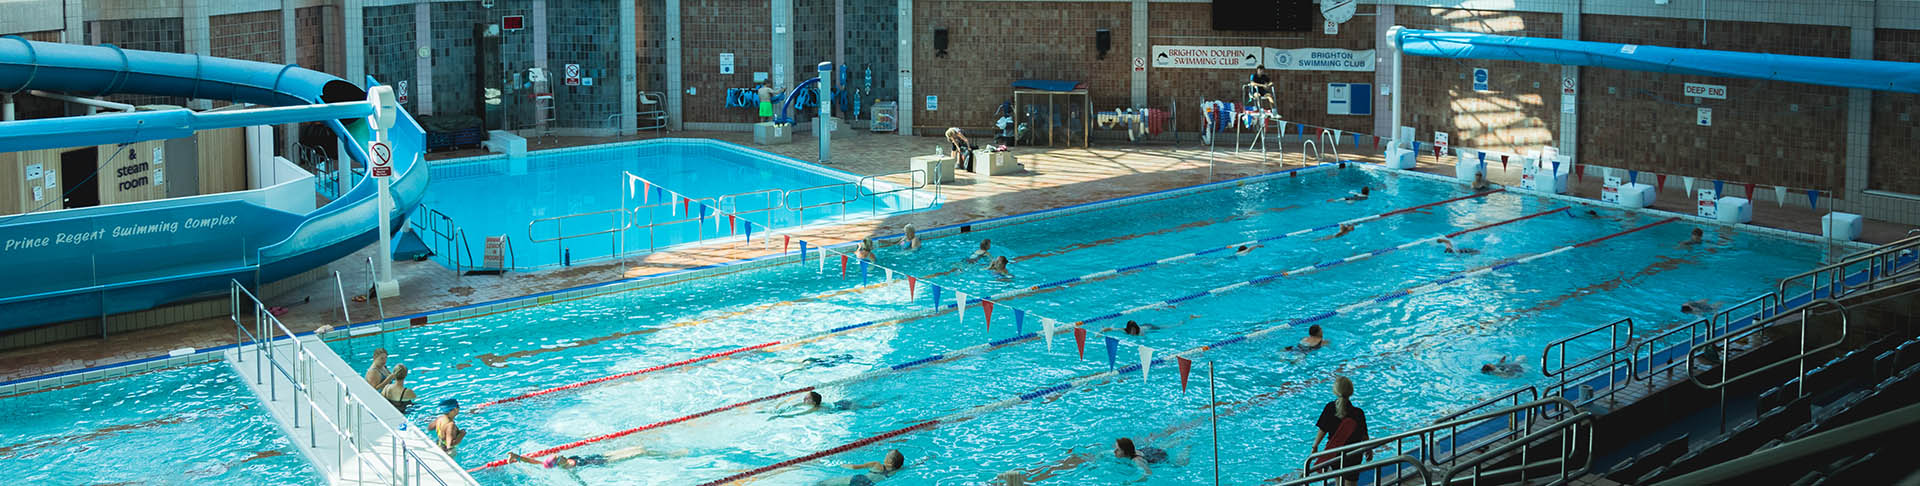 Image of Prince Regent Swimming Complex